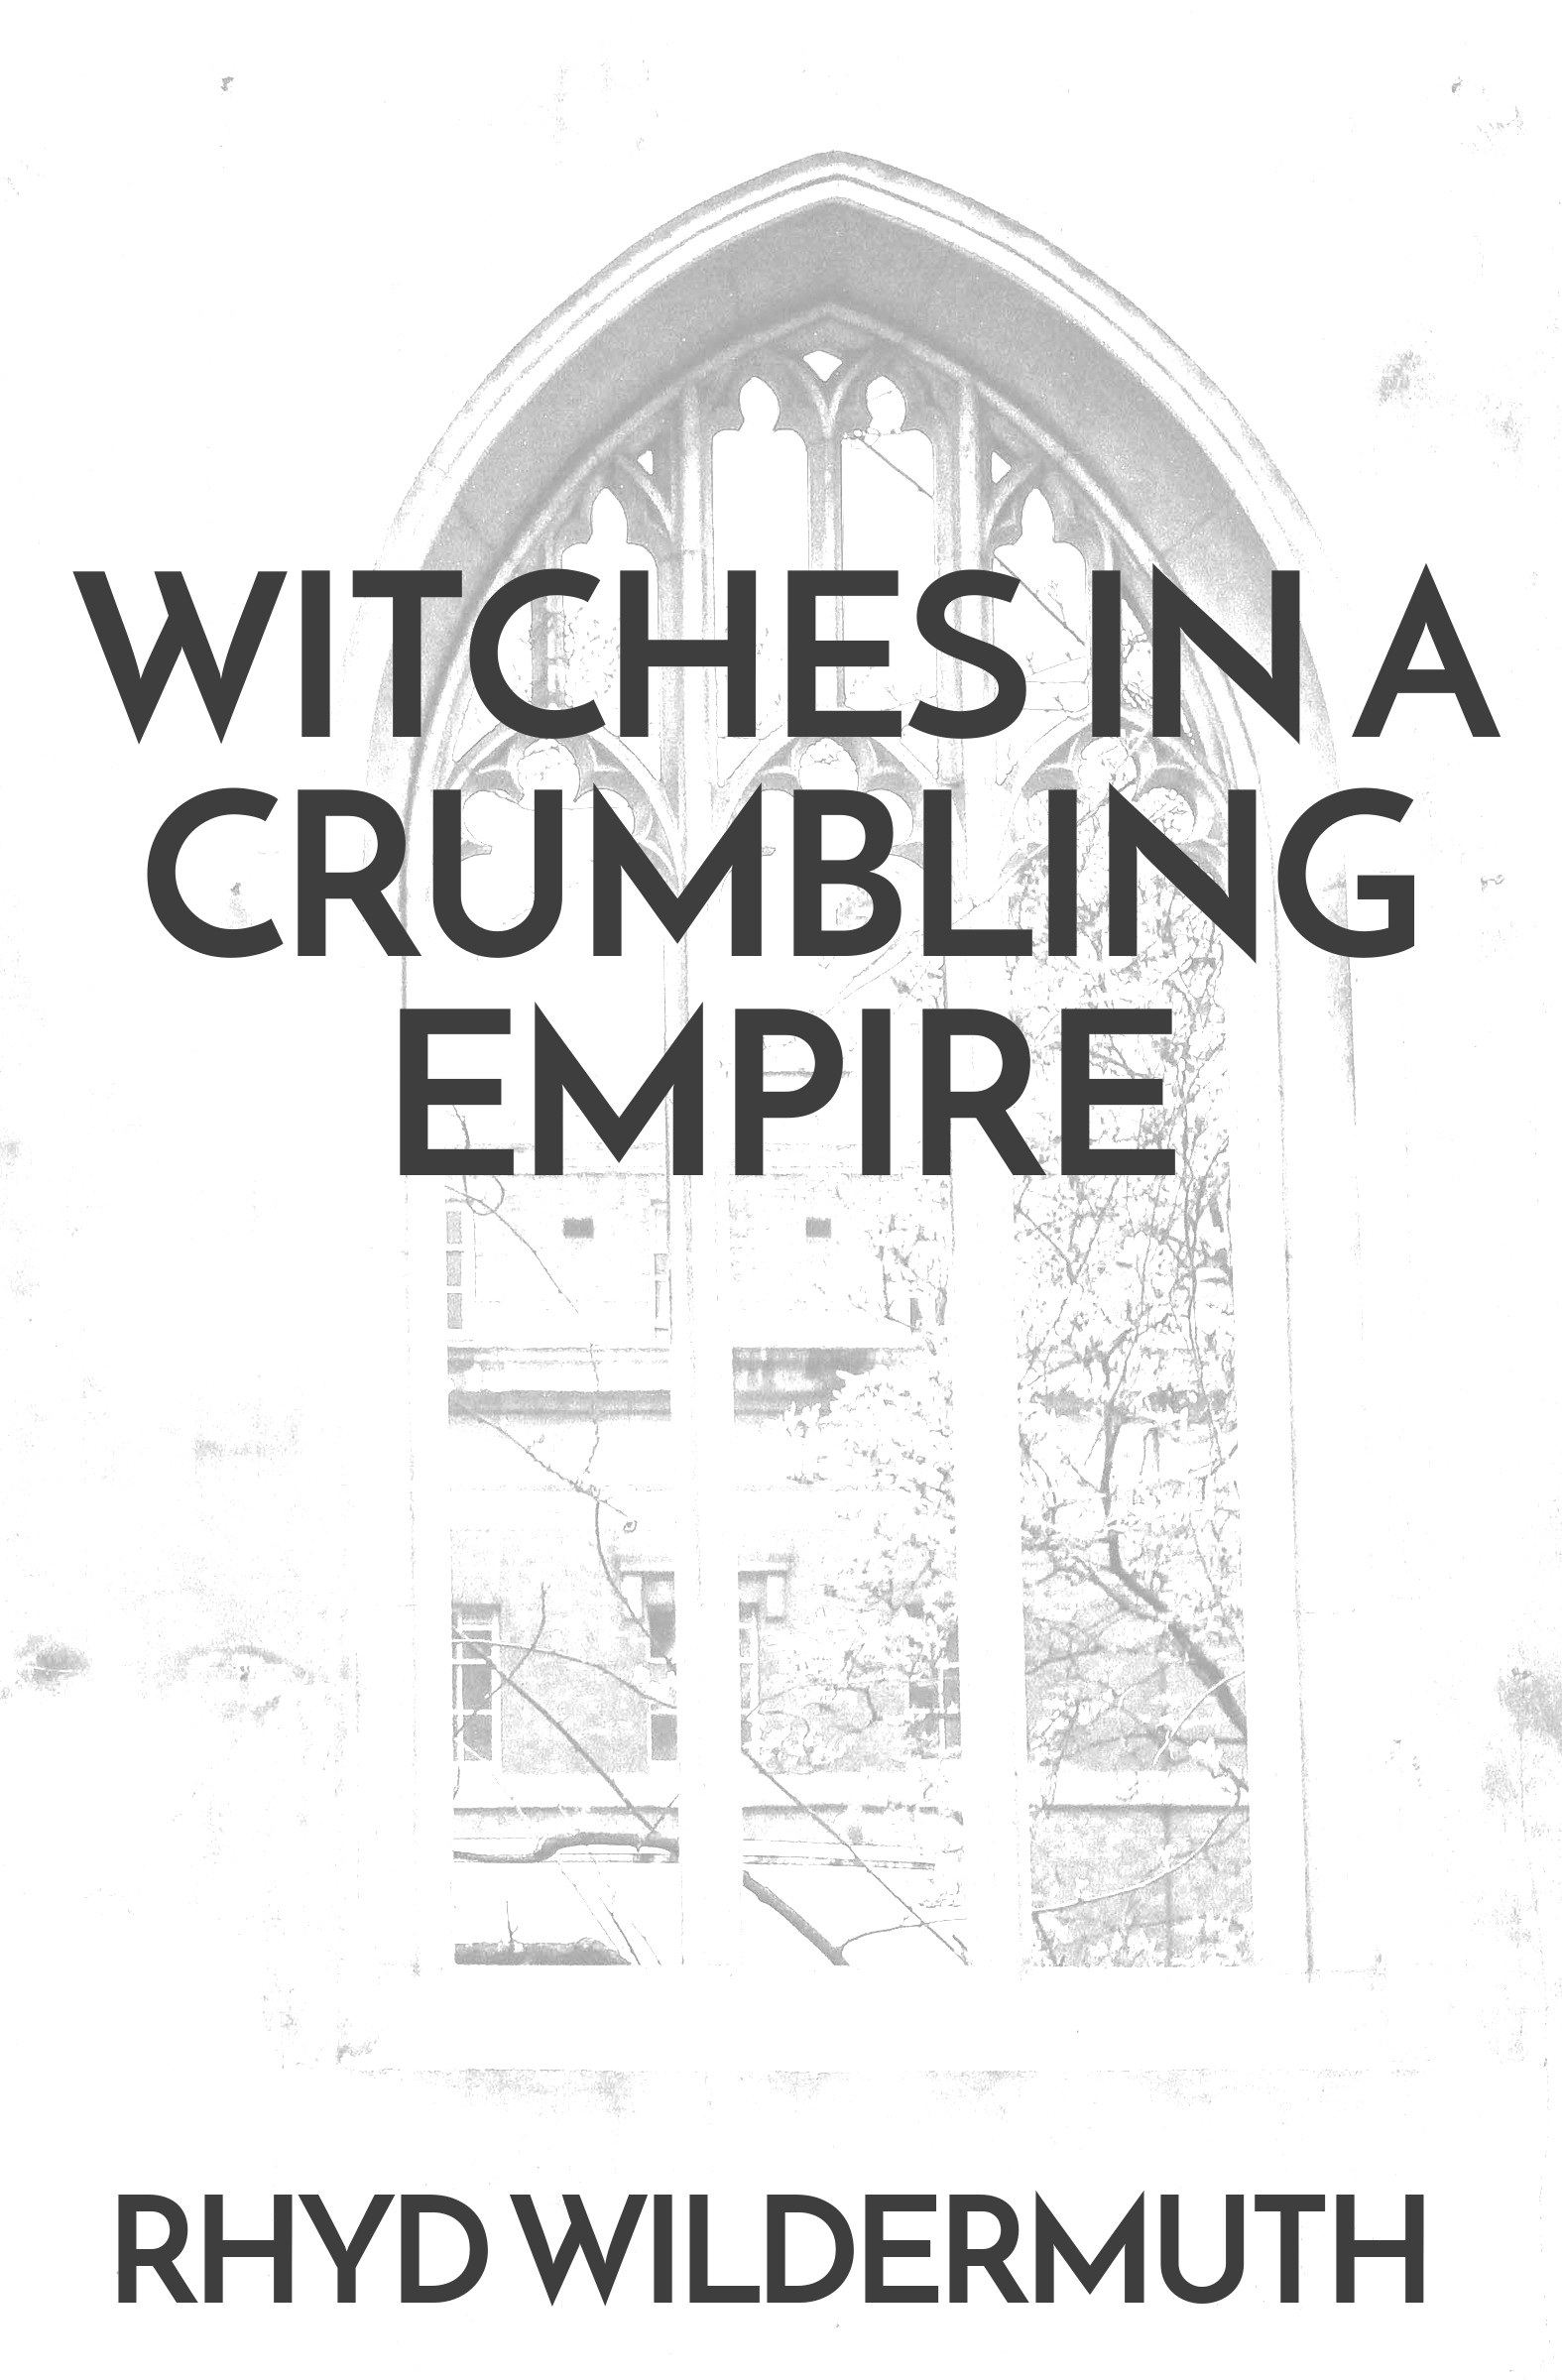 WITCHES COVER.jpg